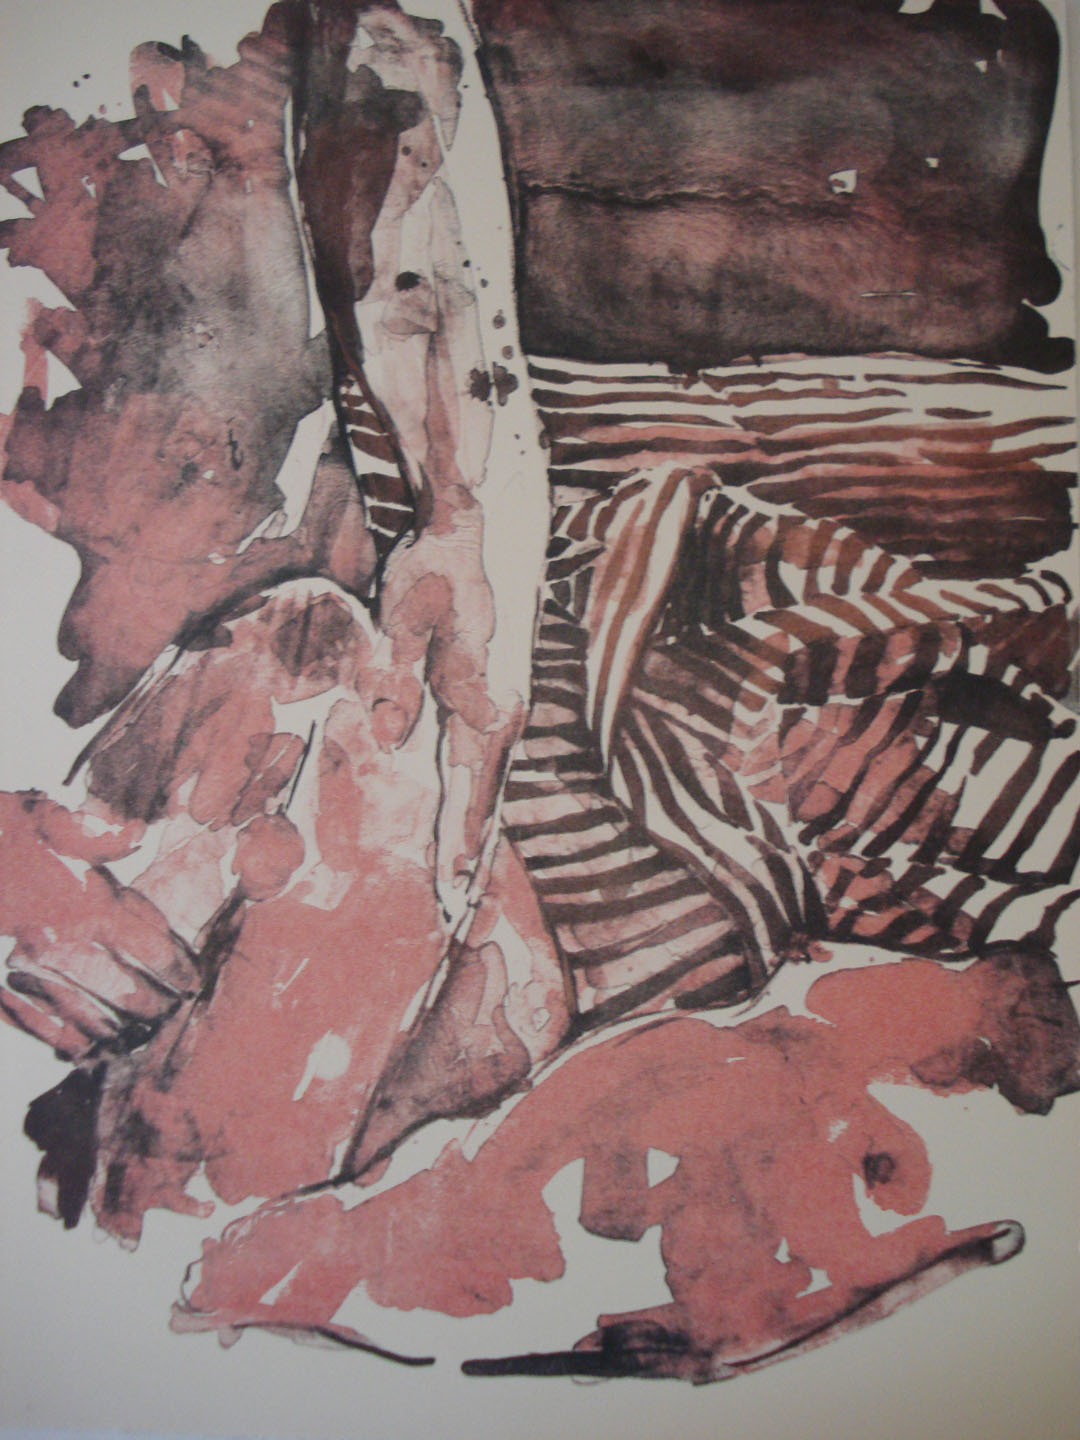 Penal Code 269 a and b #2;2007    Reductive Stone Lithograph, 18 x 15 in